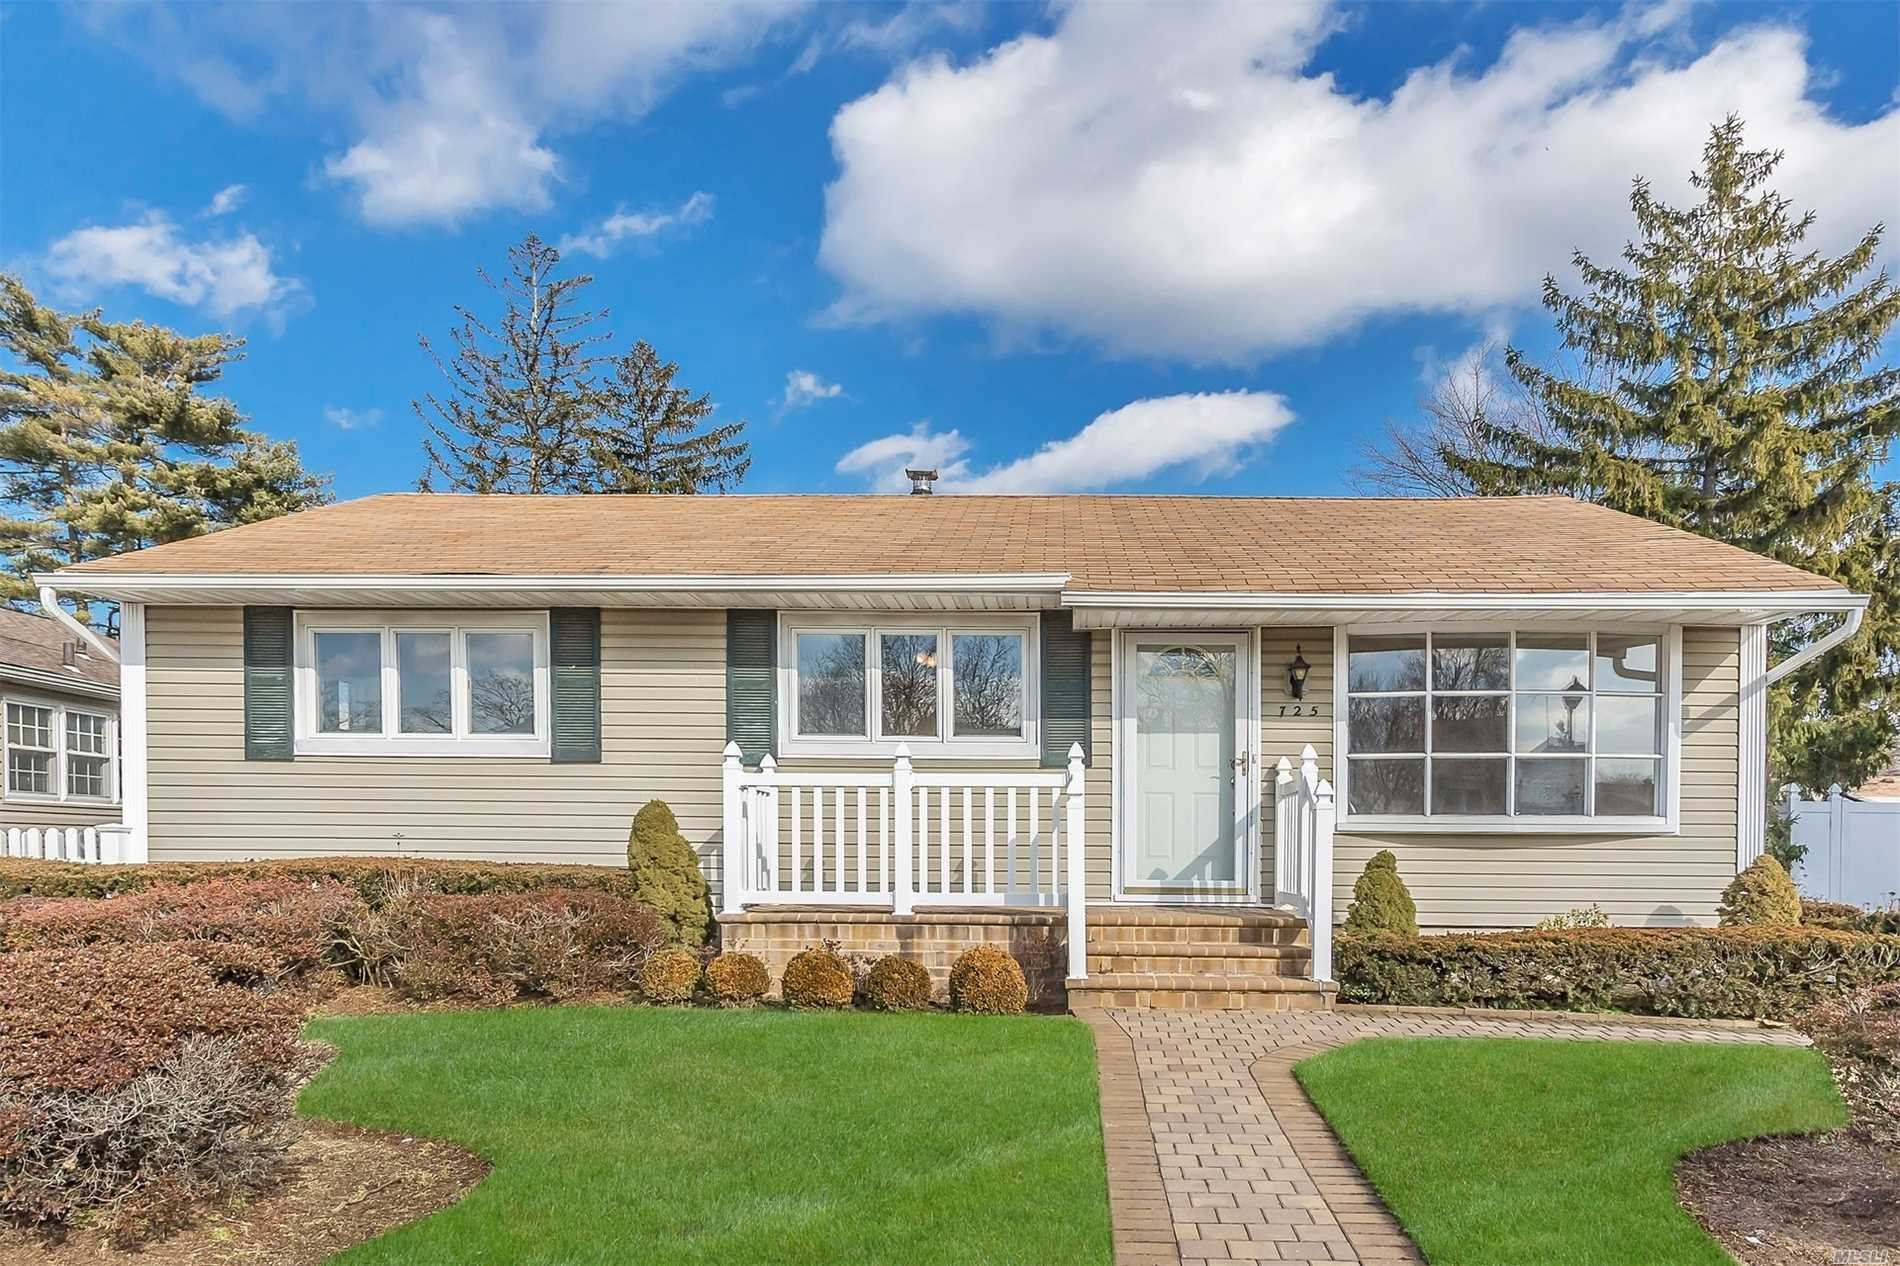 Very Sweet Freshly Painted Ranch With Den Extension.  Hardwood Floors Throughout, Cozy Family Room Overlooks Yard. Large Unfinished Basement Offers Many Possibilities,  Convenient To Shopping And Stores.